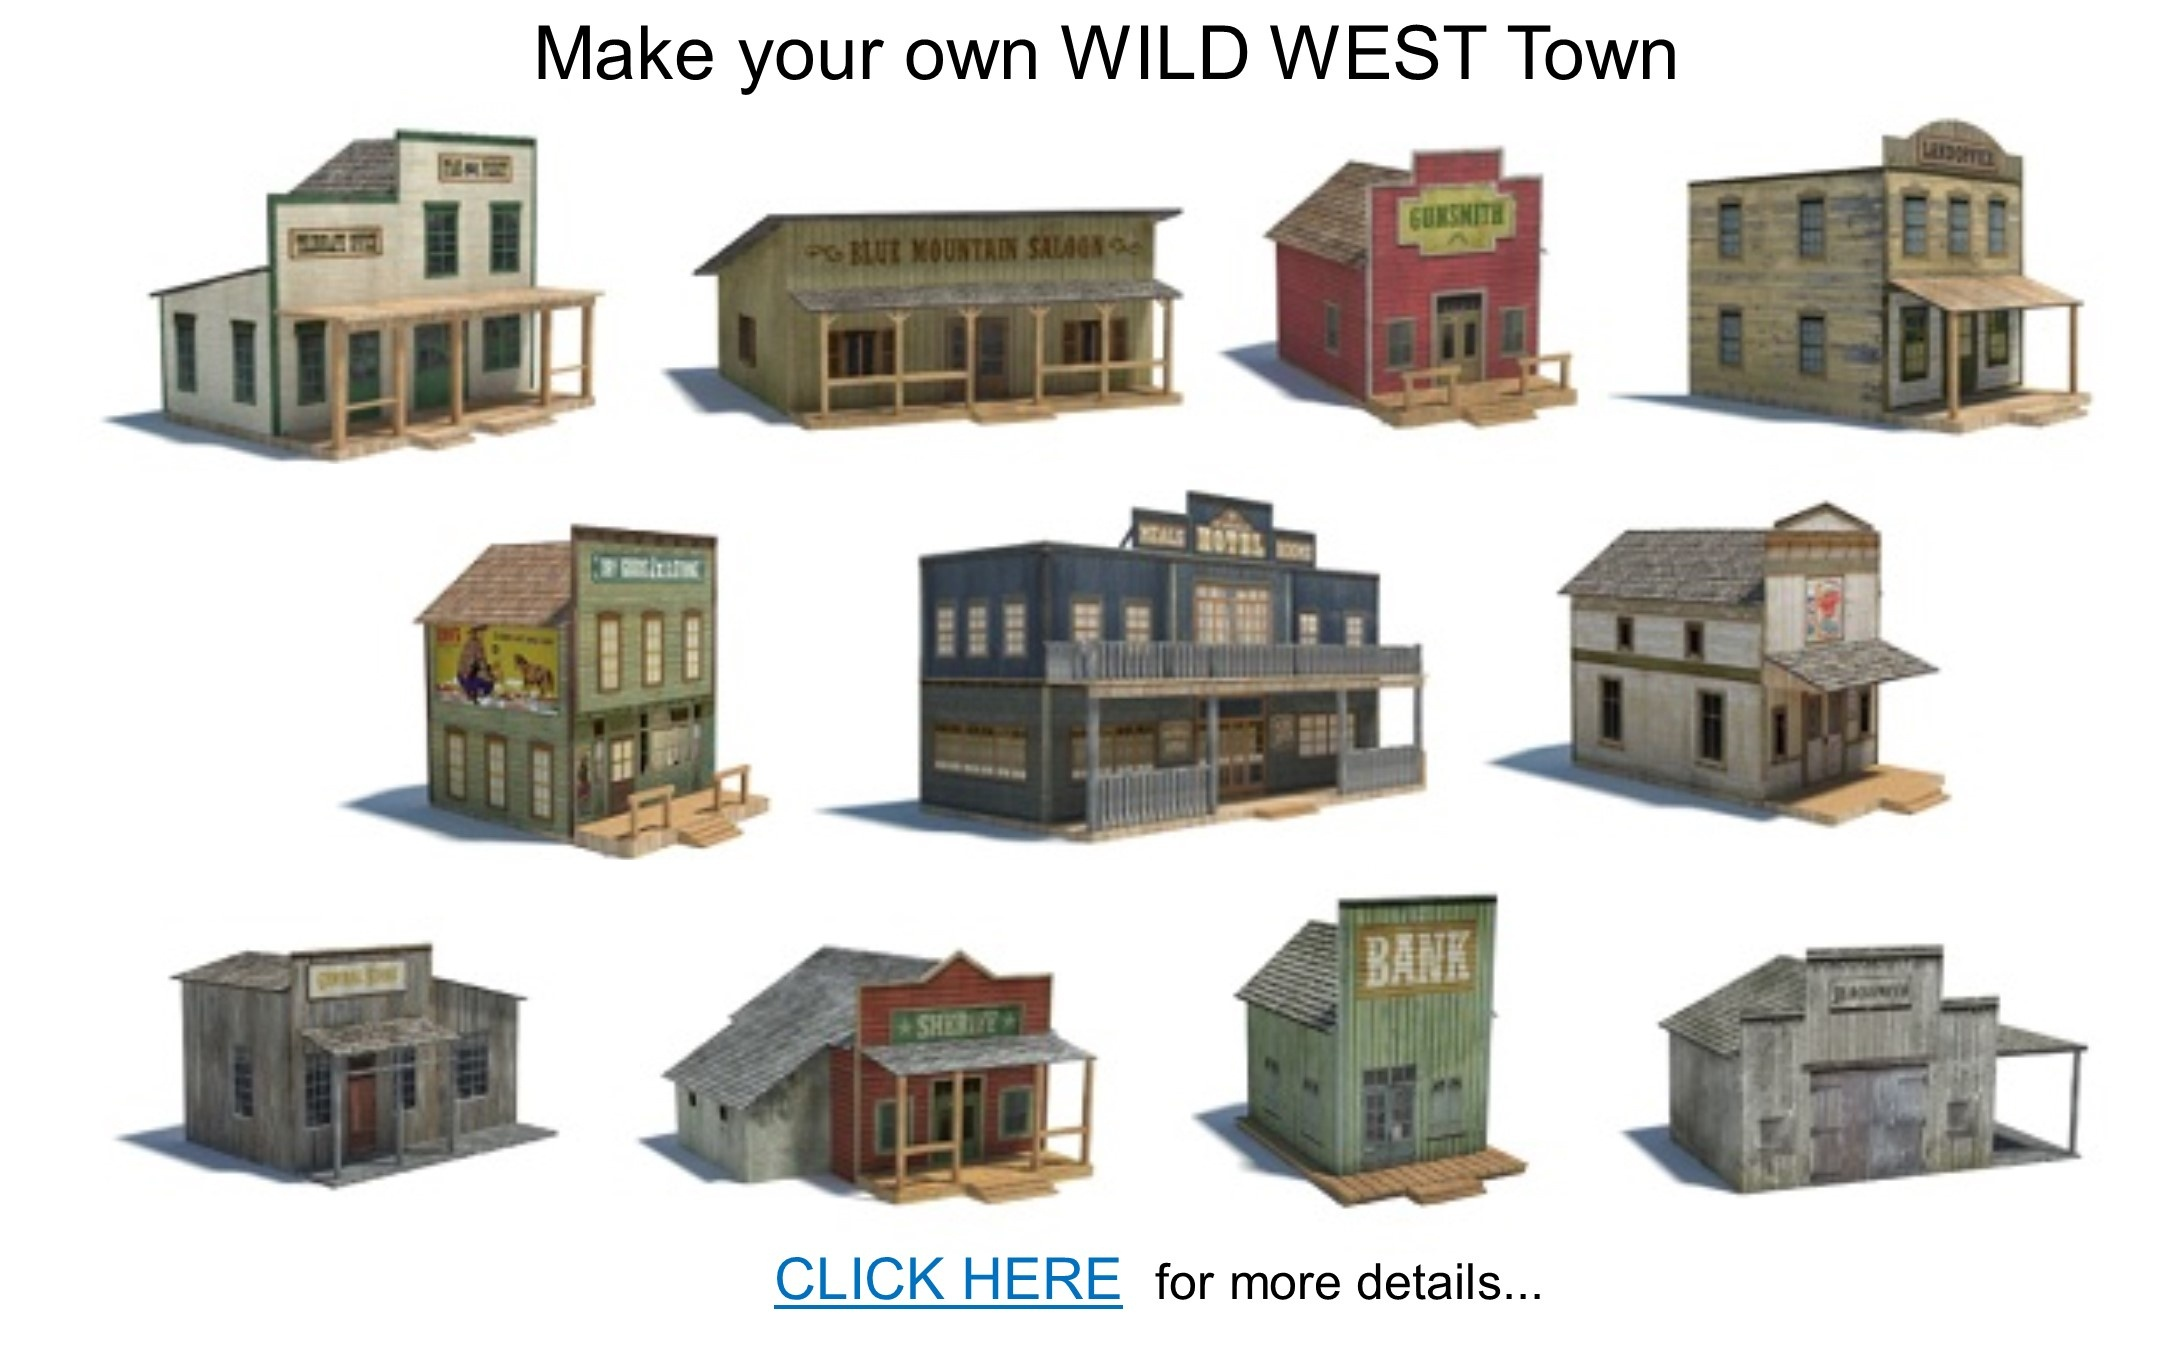 Railroad Model Buildings - Series 1 - Free Printable Model Railway Buildings